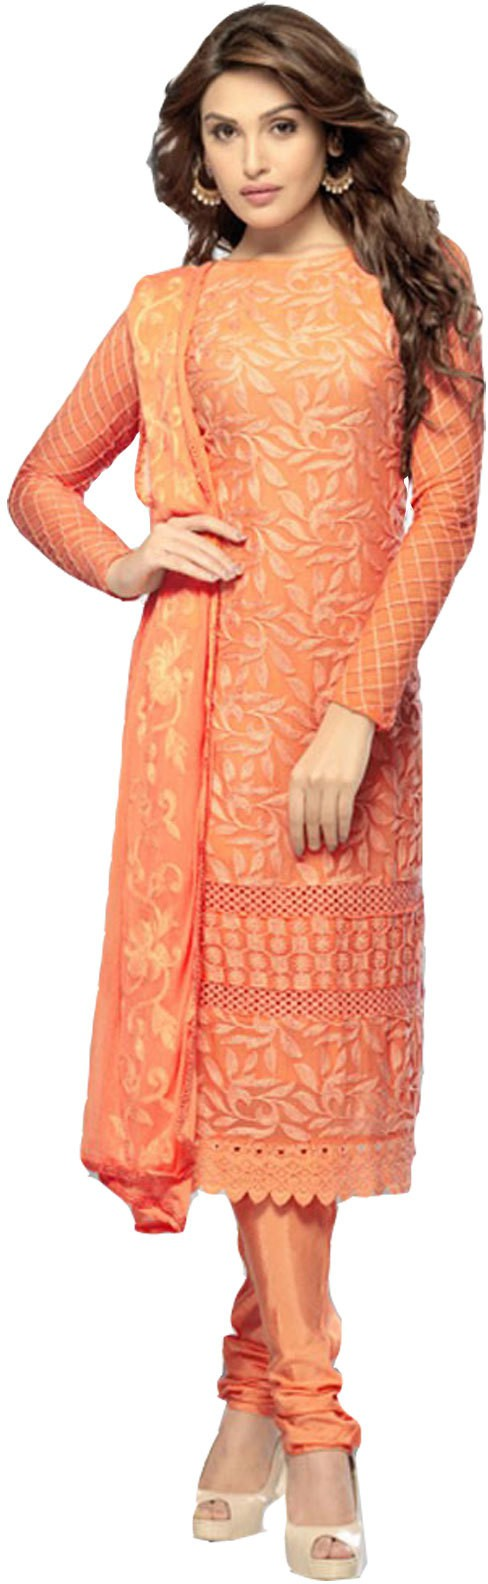 Flipkart - Dress Materials  Flat 70% Off